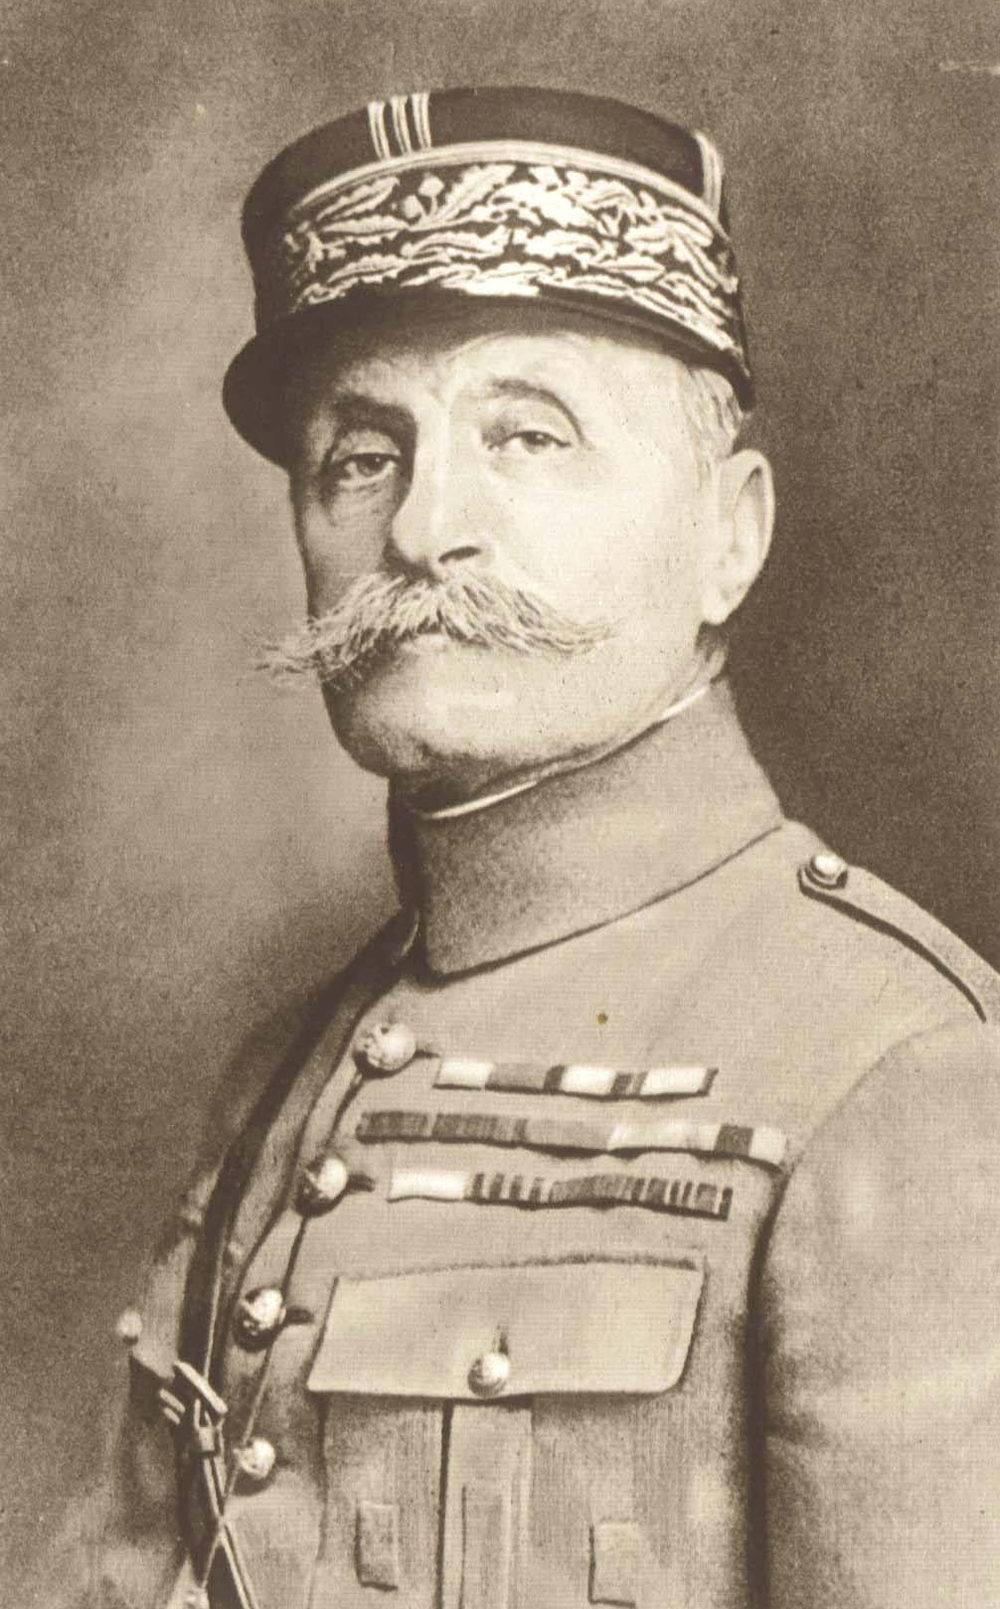 Foch, who almost had his mustache and that smug look beaten off his face by General Pershing. (Source: Public Domain).